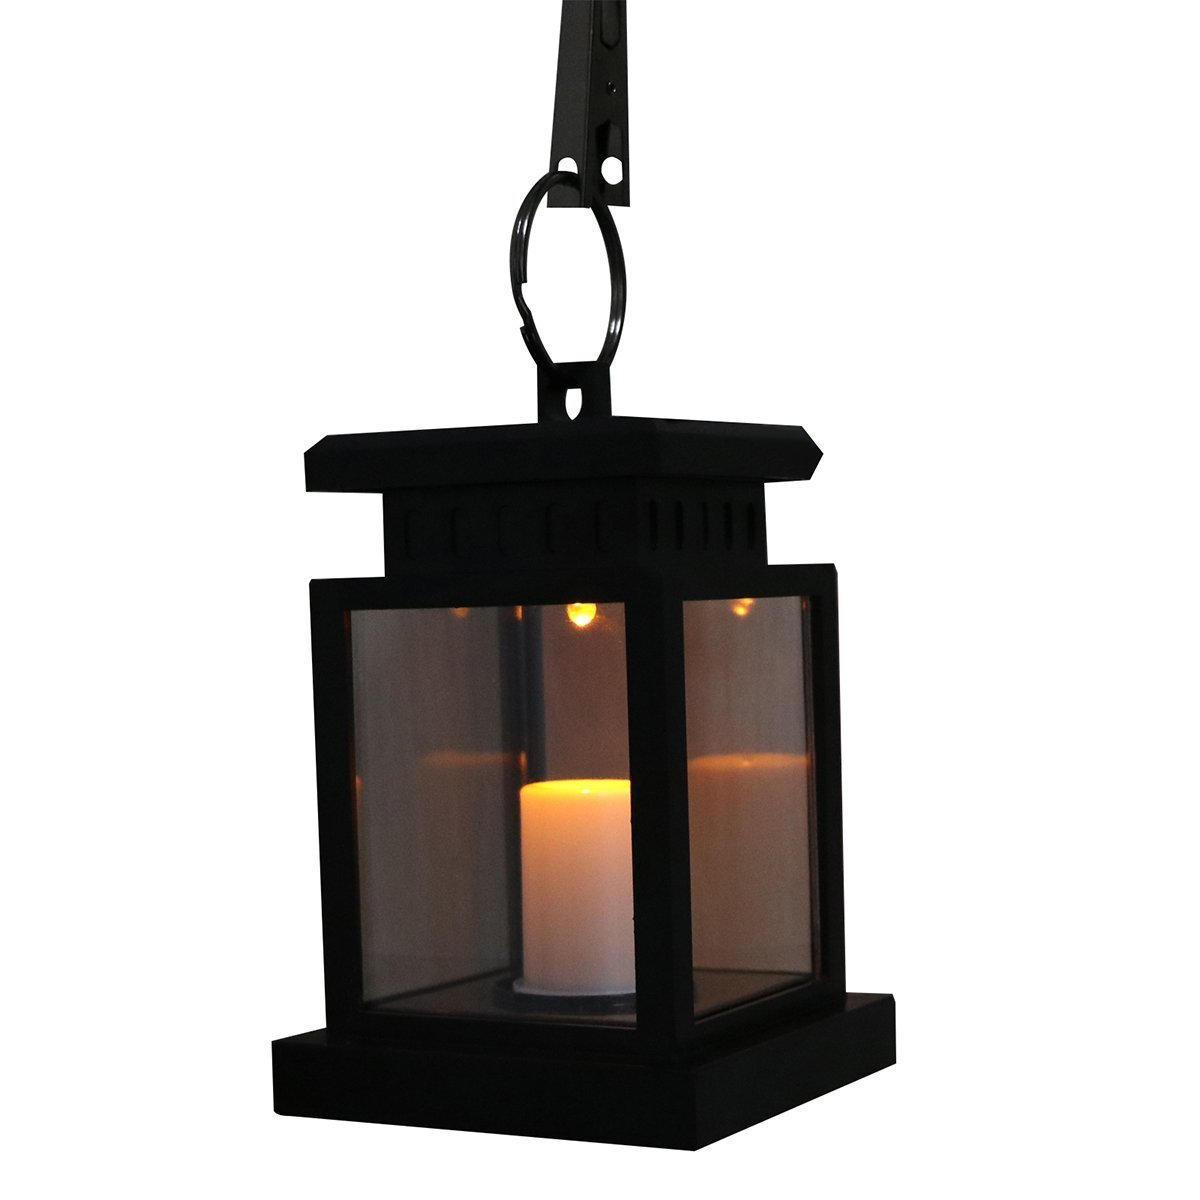 Candle Lantern Sunsbell Outdoor Hanging Lantern LED Solar Mission Lantern with Clamp (1)